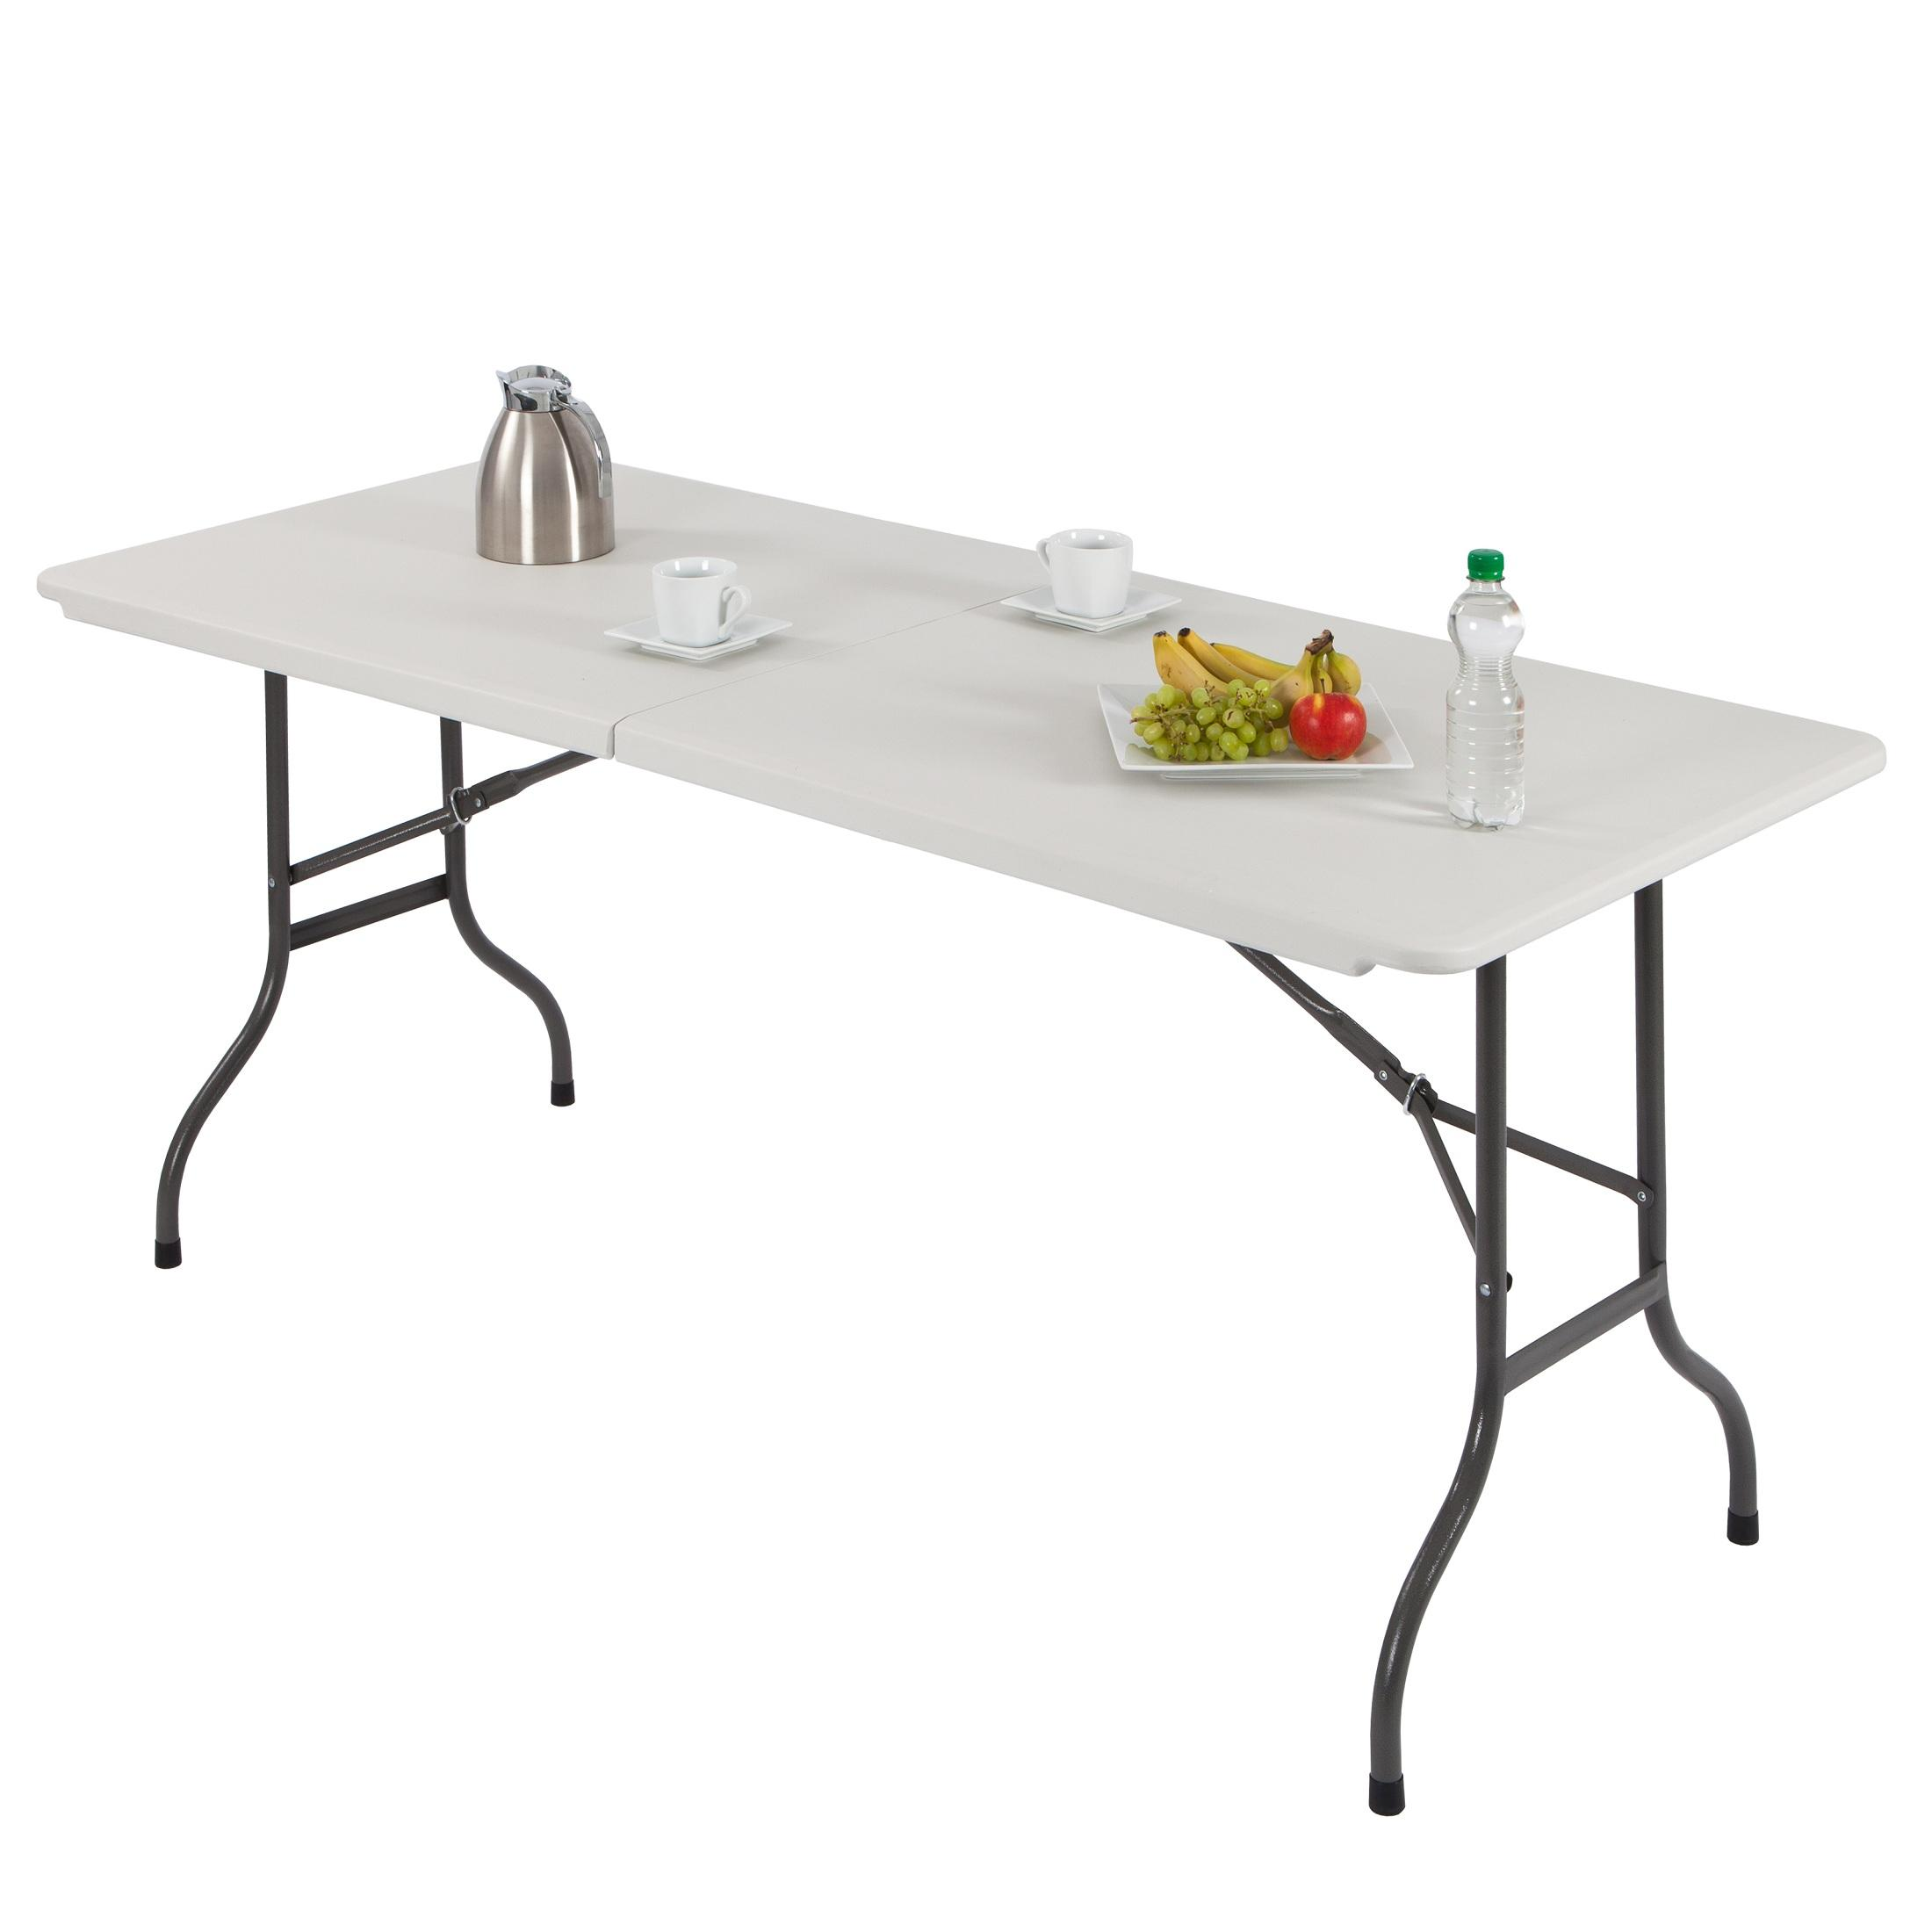 Ultranatura table pliante multiusage en plastique gamme for Table de cuisine pliante pas cher